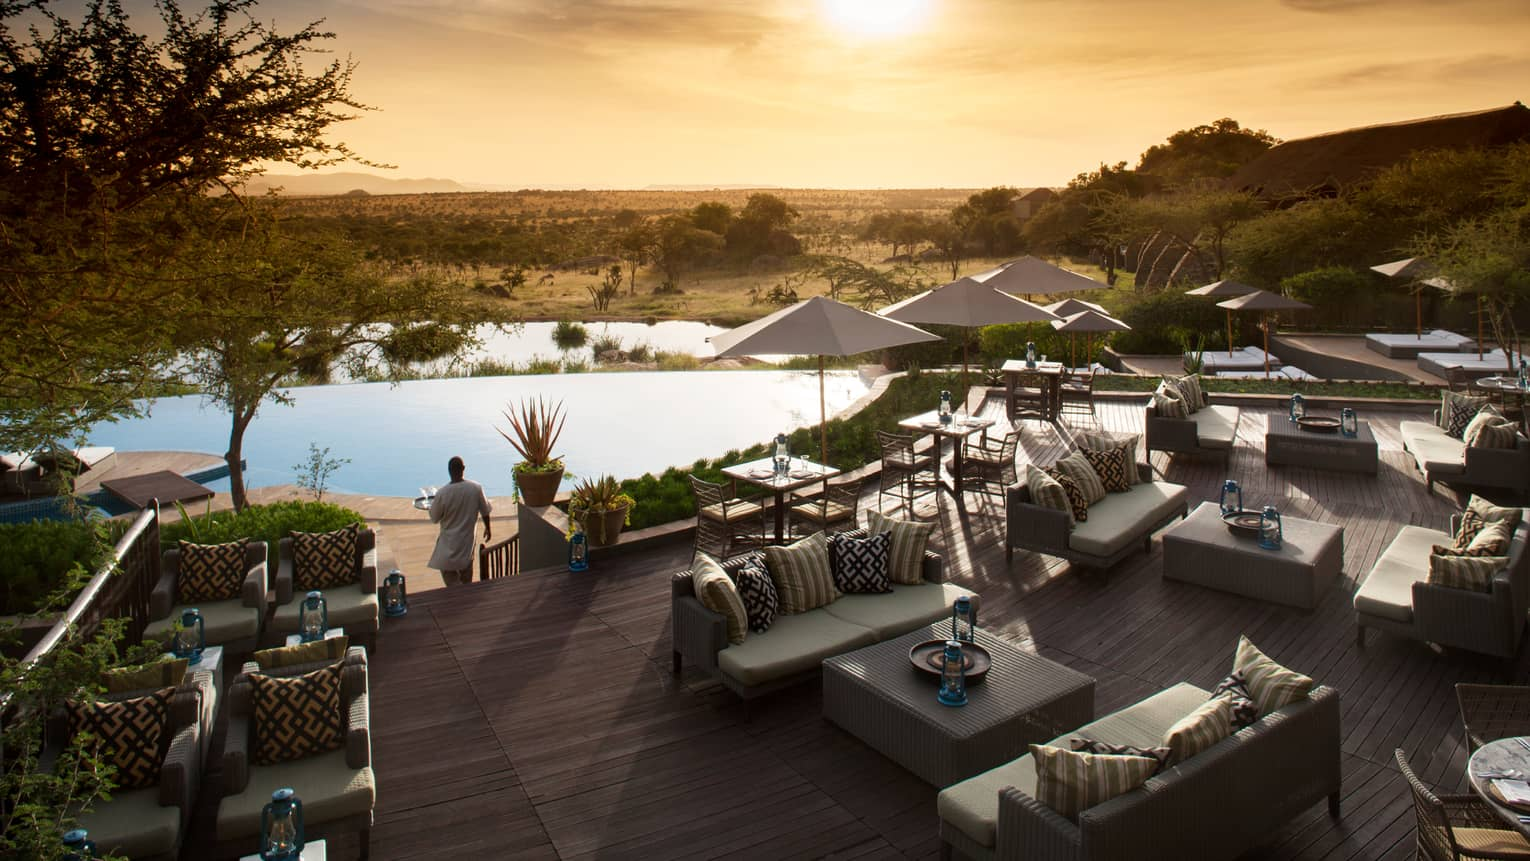 Server carries tray through Terrace Bar outdoor patio by lounge chairs, swimming pool at sunset